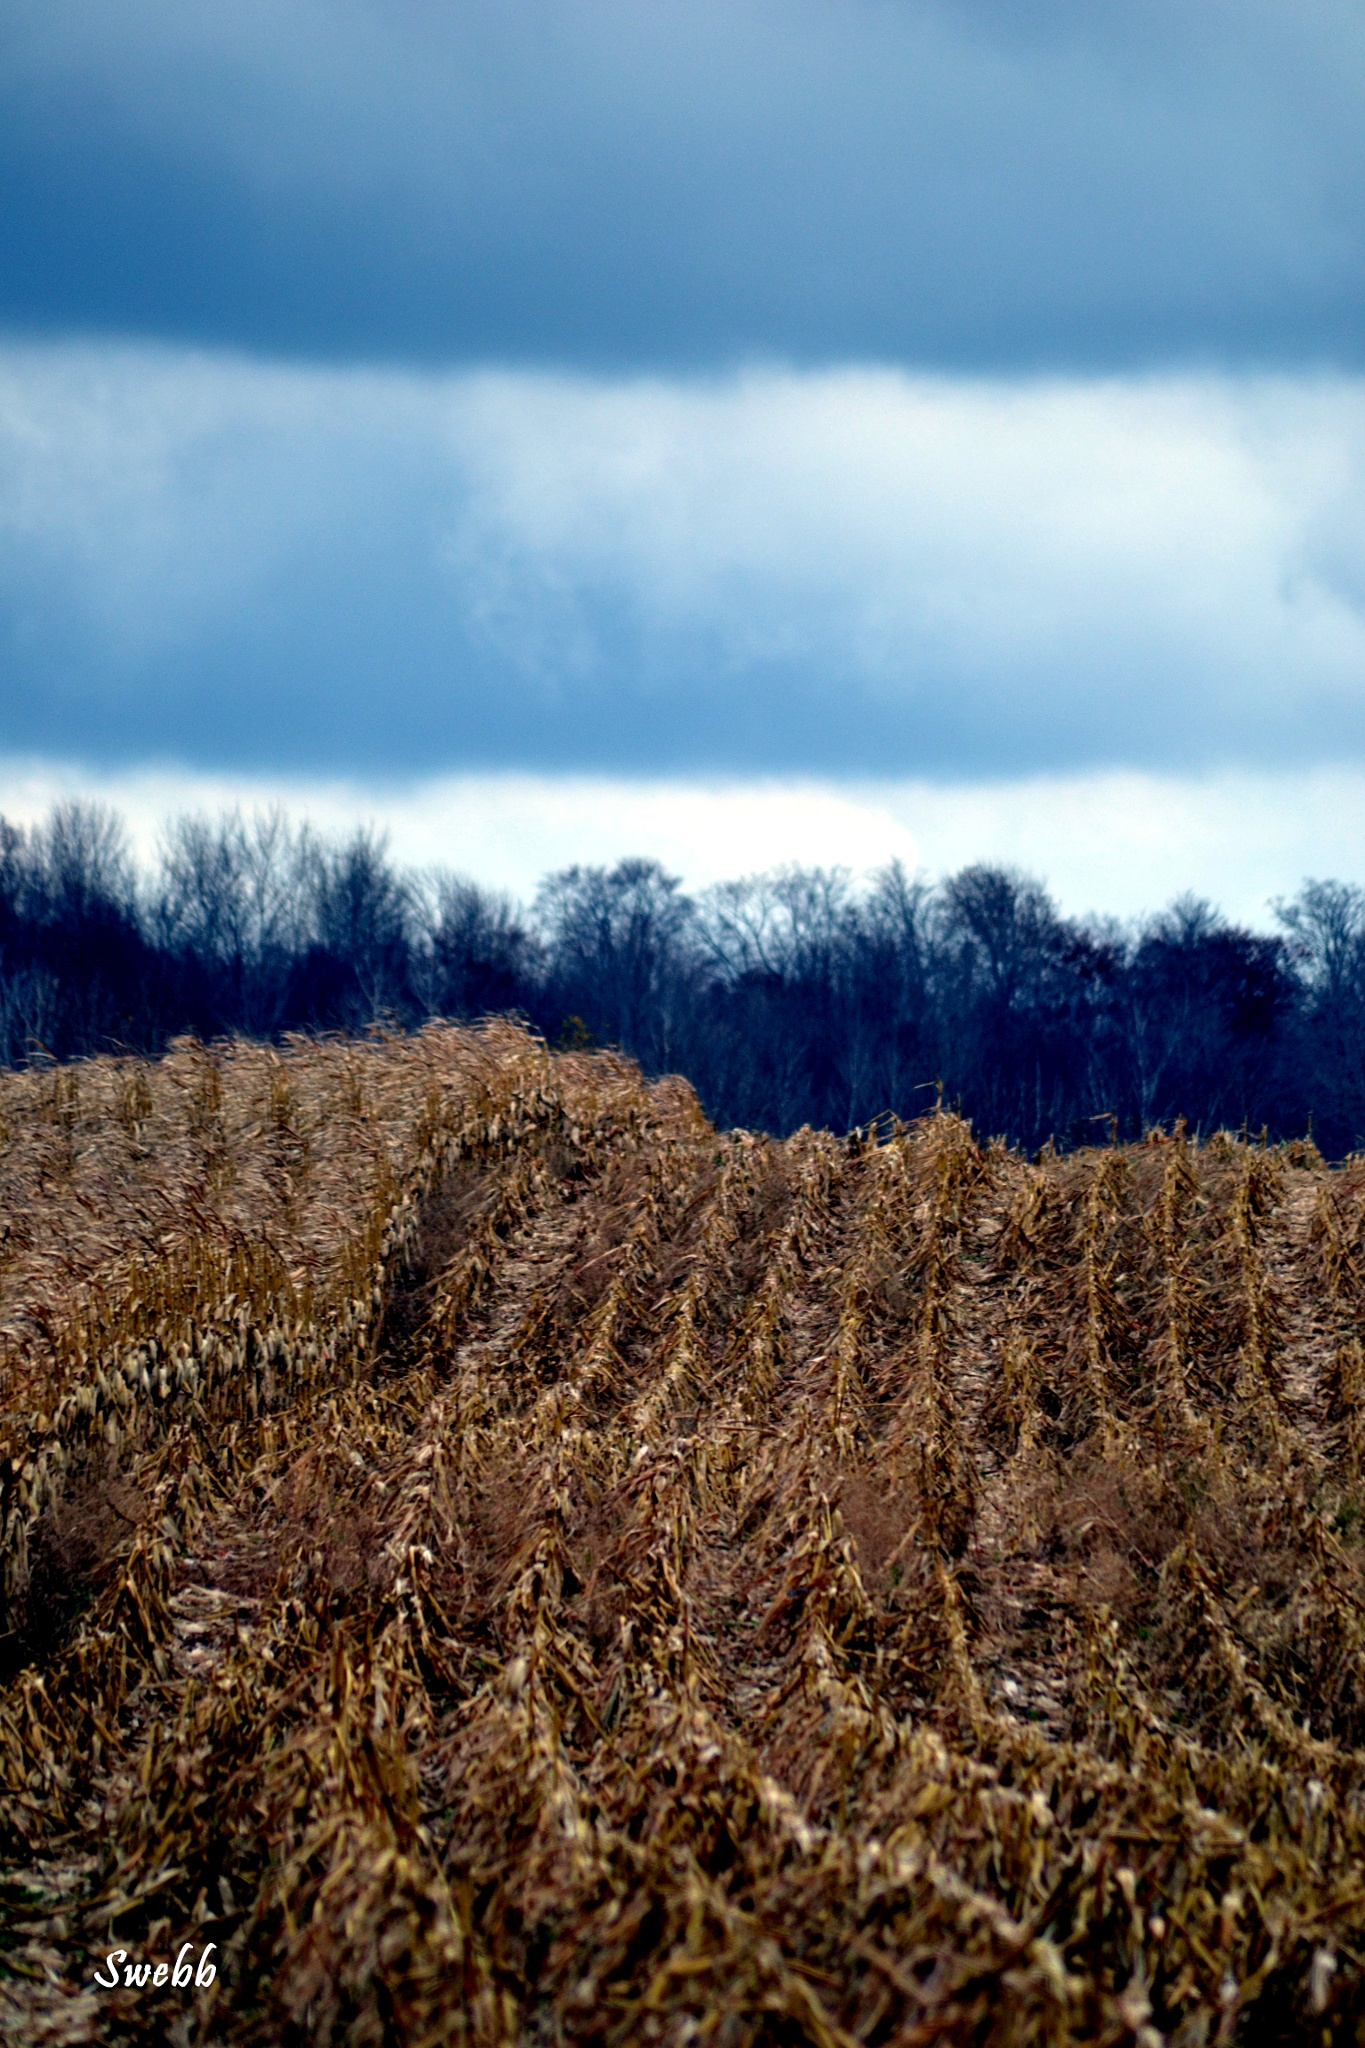 Corn Stalks & Clouds by Steve Webb